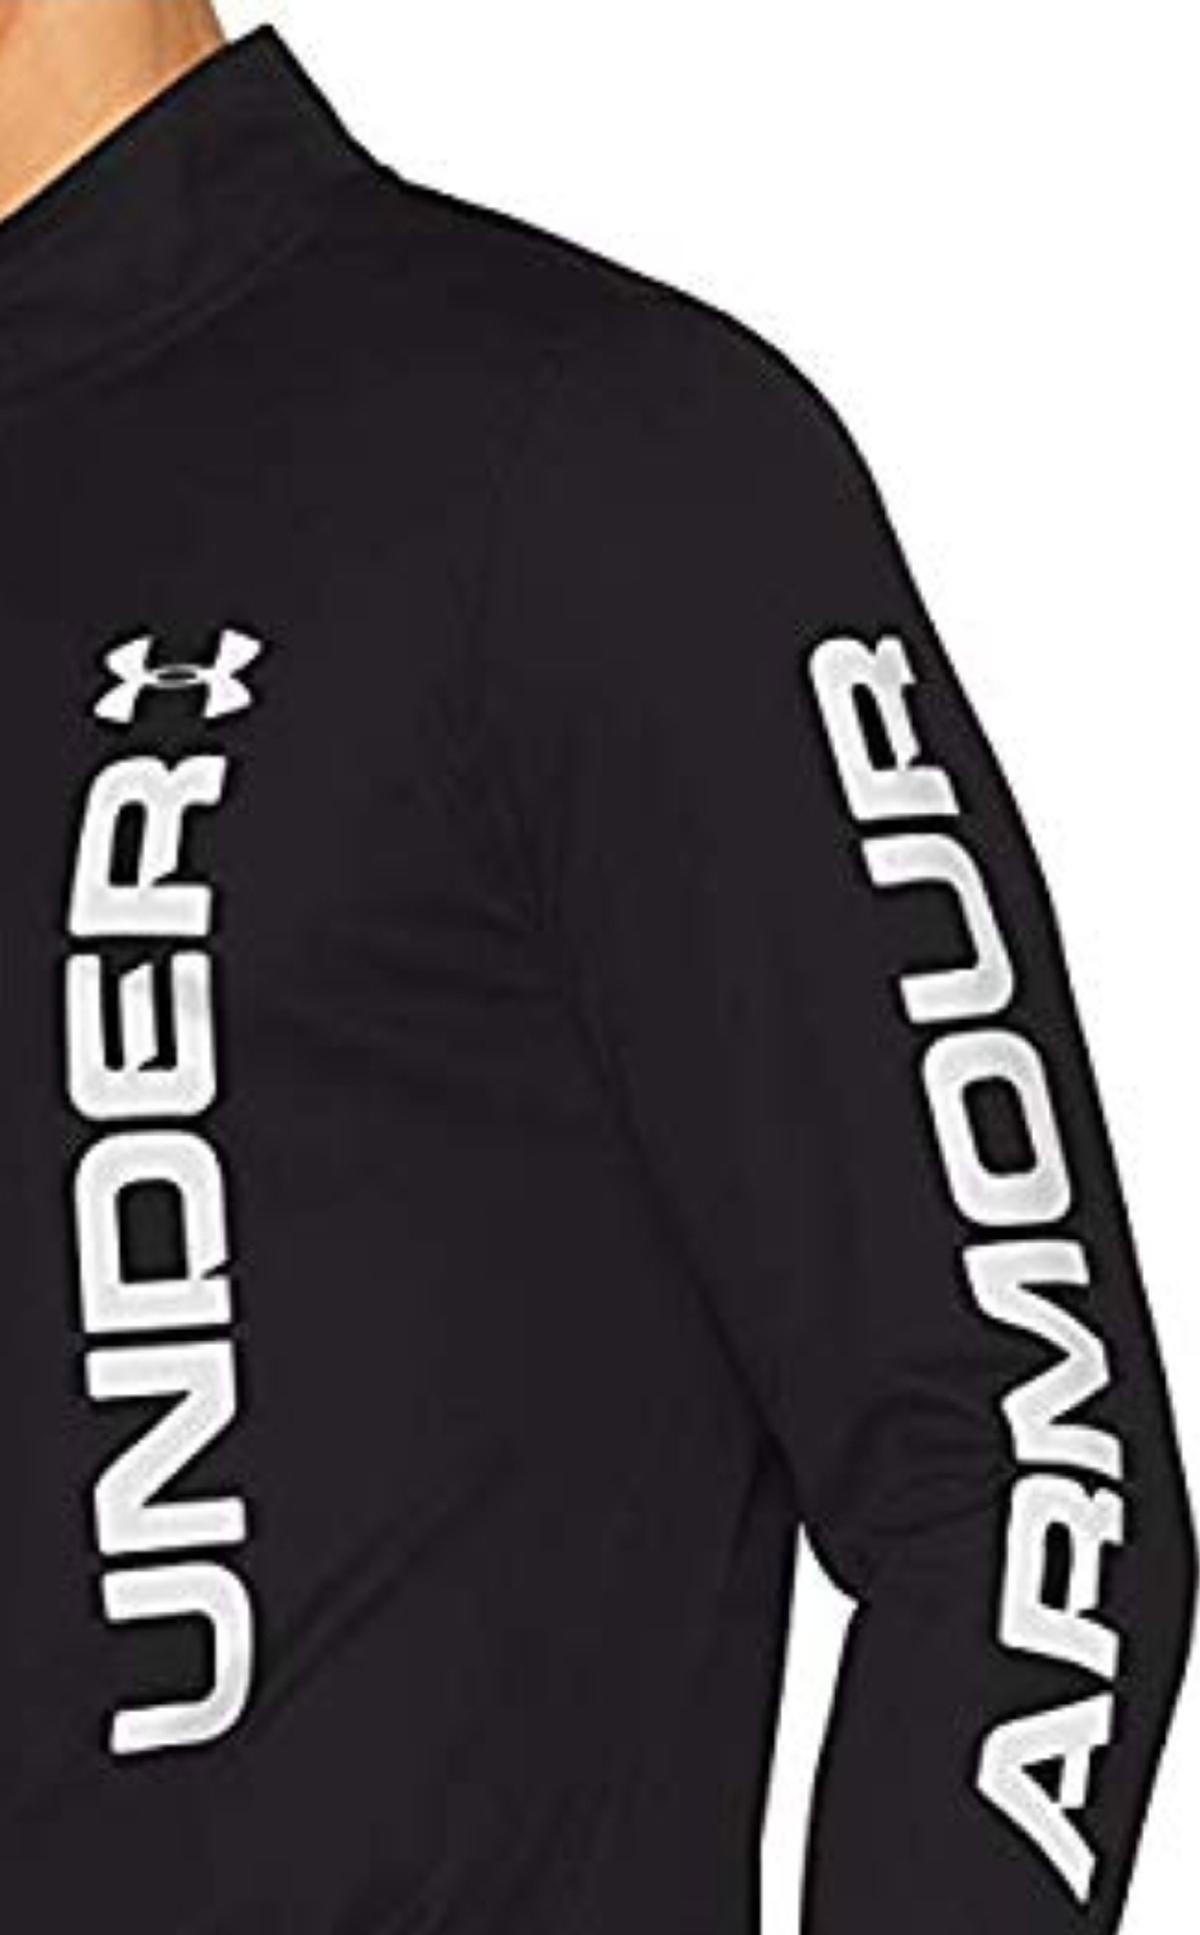 Under Armour Mens Speed Stride Split 1/4 Zip Top In Black Size XXL. BNWT. Lightweight men's running top  1/4 zipper  Breathable & comfortable  Dries quickly  Low-cut hem  Reflective details  Graphics on chest and sleeve  Fit: Tight  Material: 100 Percent Polyester